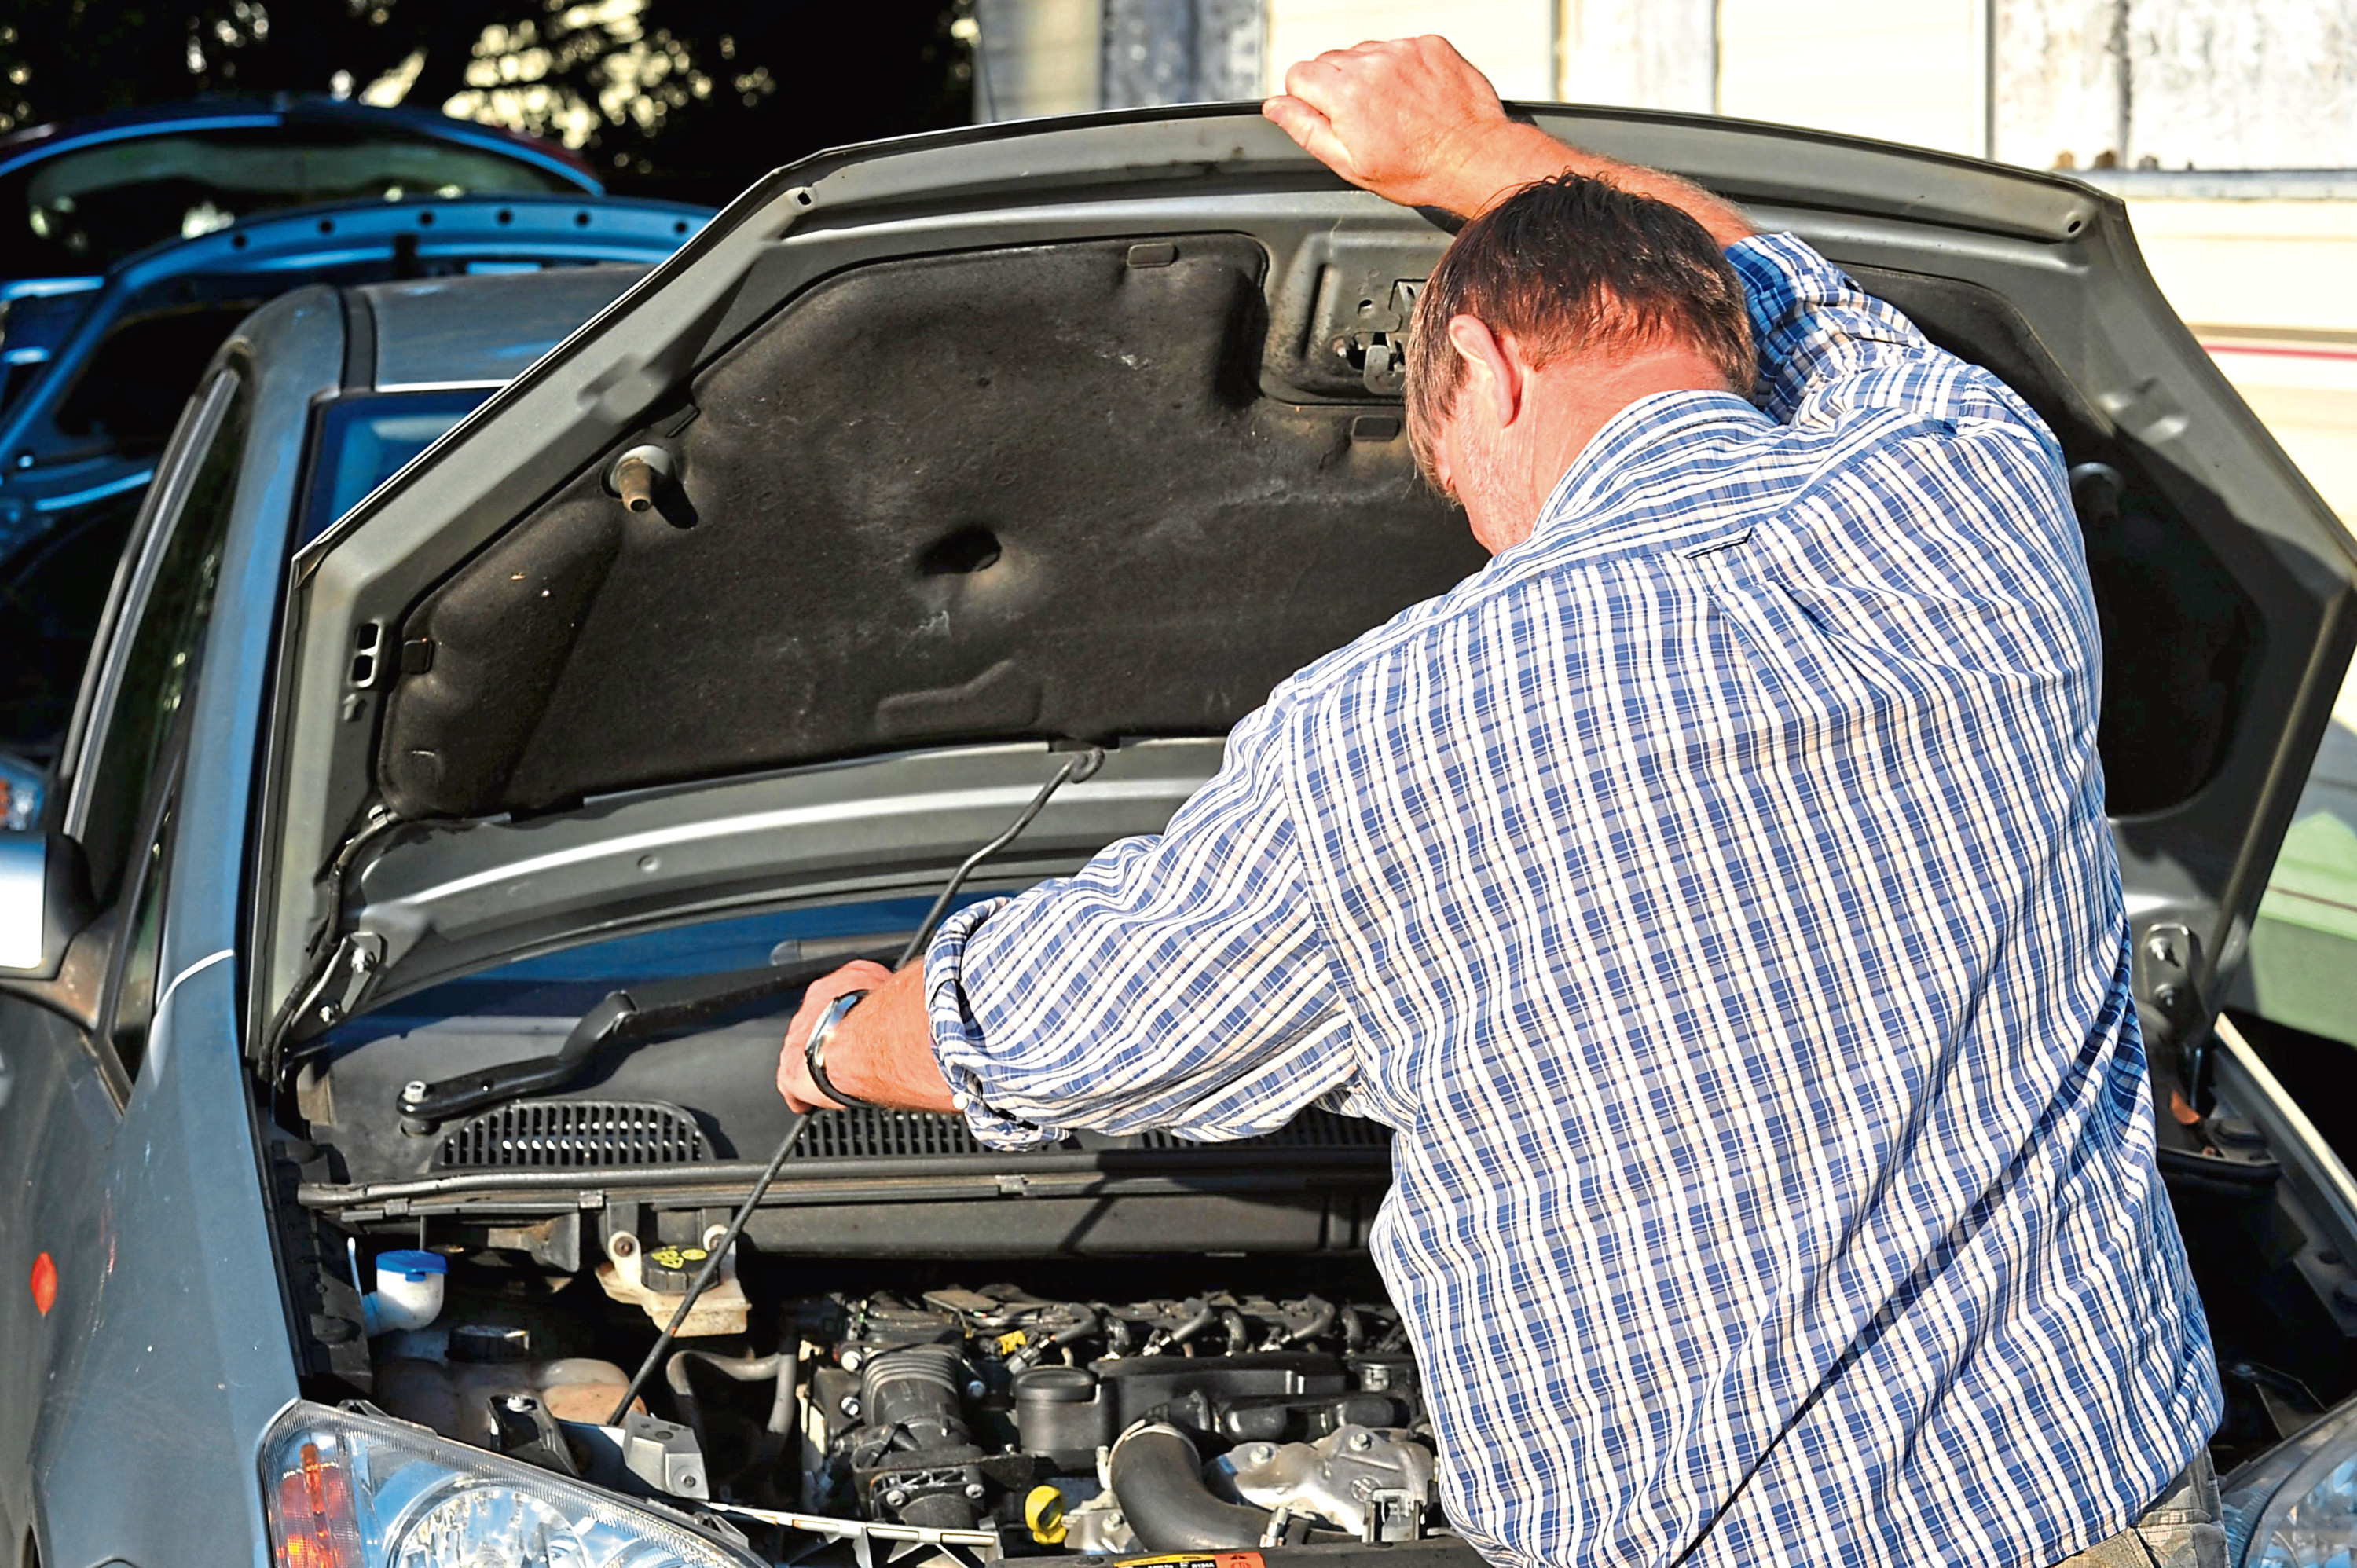 POSED BY MODEL    File photo dated 06/10/11 of a man looking under the bonnet of a car in London. PRESS ASSOCIATION Photo. Issue date: Thursday October 27, 2011. Changes to the frequency of MOT tests for cars could lead to more than 250 additional road deaths a year, campaigners said. The Government is looking at ways 'to reduce the burden' of the MOT test which is currently required annually for cars three years old or more. Possible changes to this requirement have alarmed road safety, motoring and industry groups. Today, 25 organisations joined forces to launch a campaign to get the Government to rule out reducing the frequency of MOT testing. The campaigners fear any reduction could lead to 2,200 additional serious injuries a year as well as more-expensive repairs and higher insurance bills for motorists. The organisations also say that most drivers are opposed to any MOT changes and that up to 40,000 jobs in the MOT industry, including a large number of apprenticeships, could be at risk. See PA story TRA